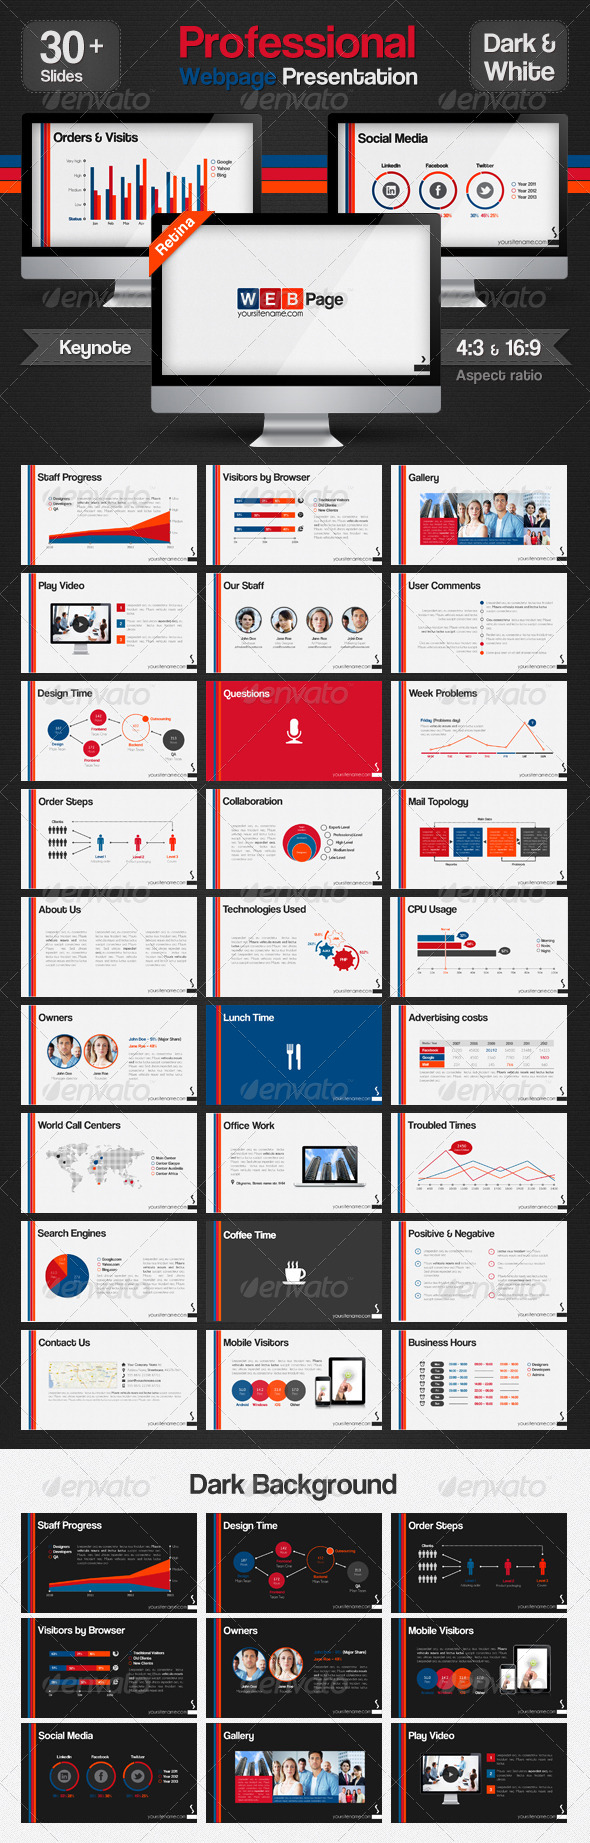 GraphicRiver Professional Web Page Presentation Keynote 4331926